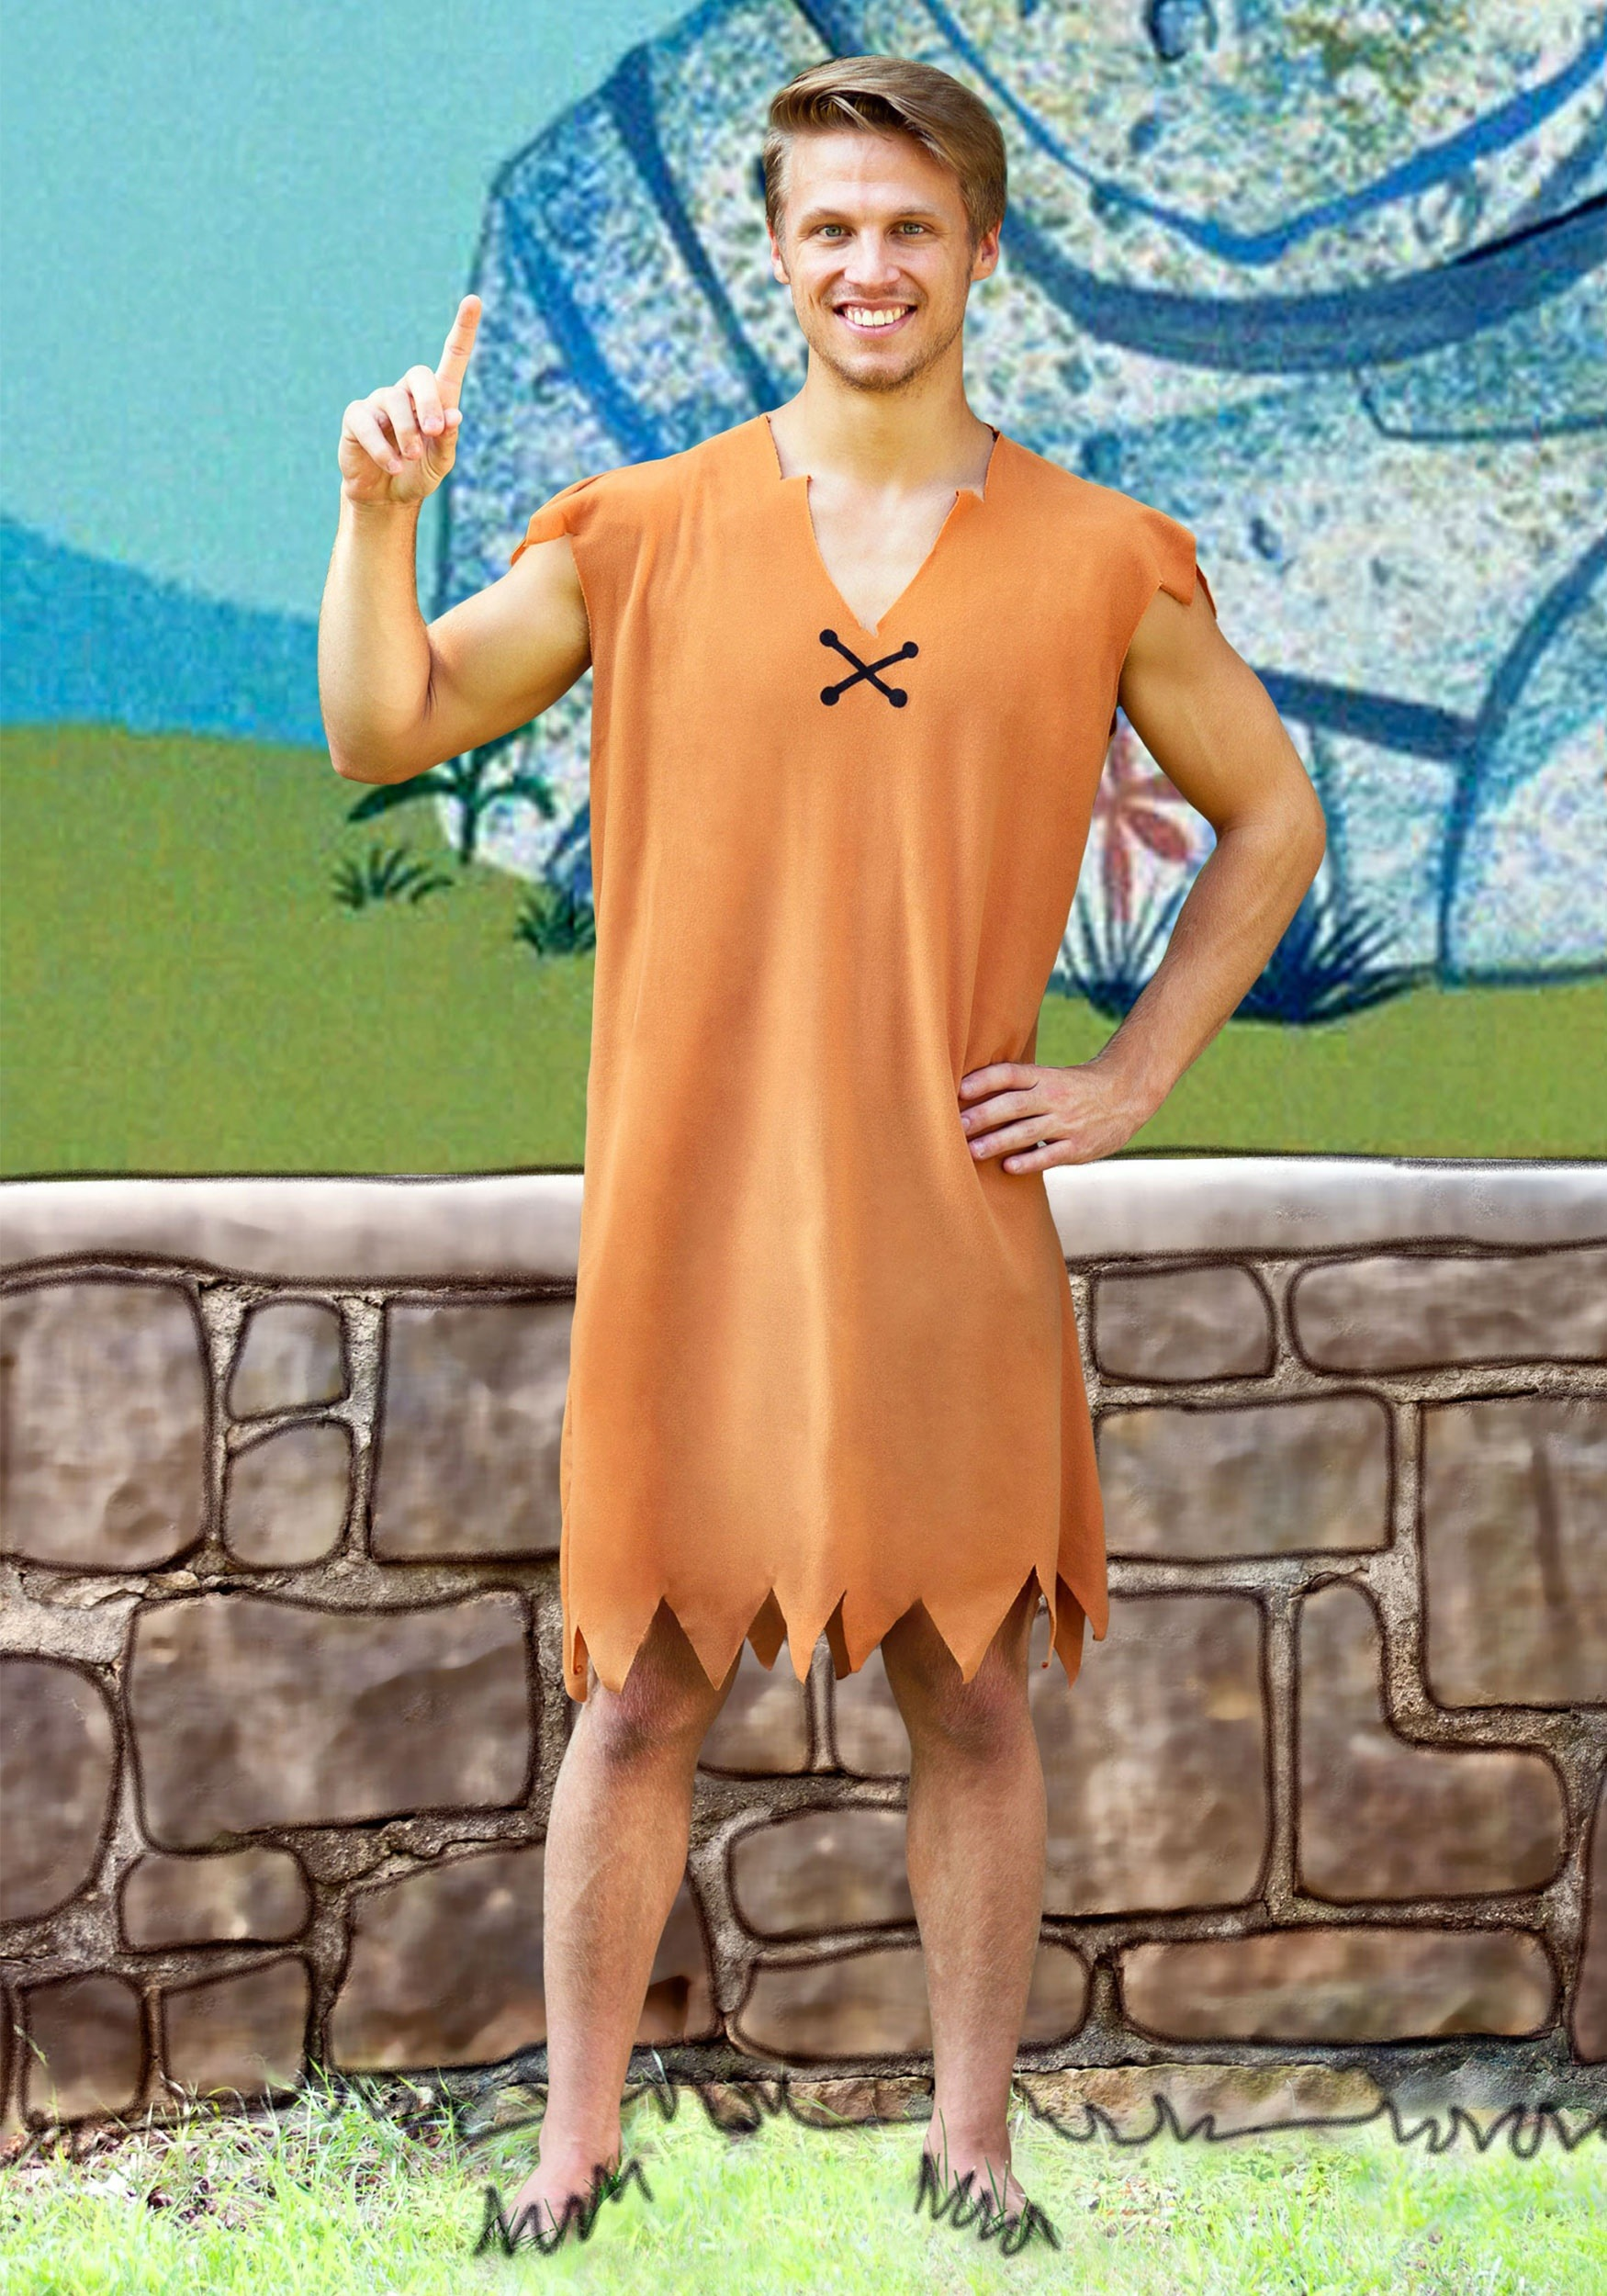 Barney Rubble Adult Costume  sc 1 st  Halloween Costumes & Barney Rubble Adult Costume - Adult Flintstones Costumes